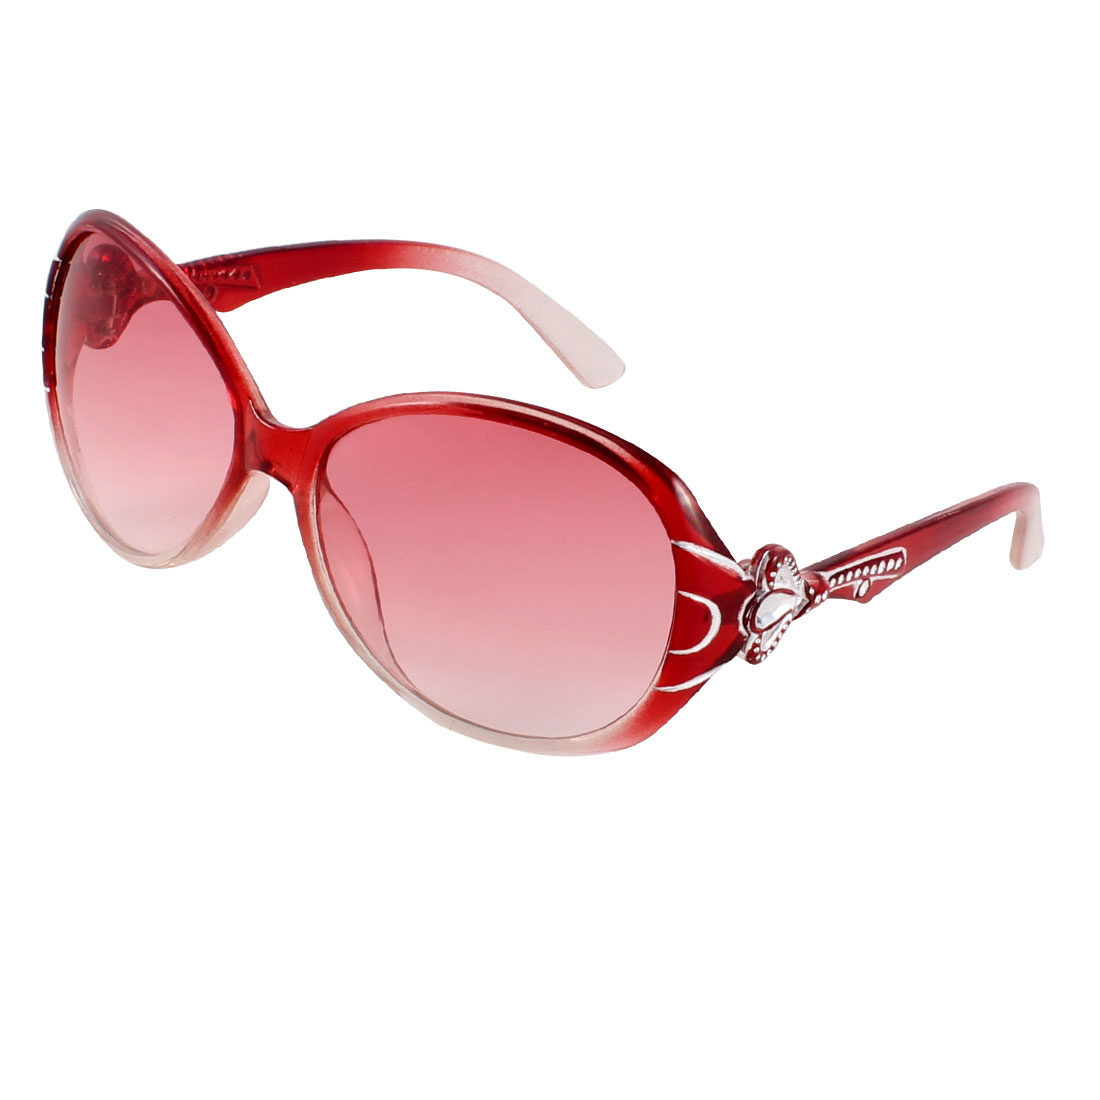 Red Arm Full Frame Single Bridge Clear Red Lens Sunglasses for Woman